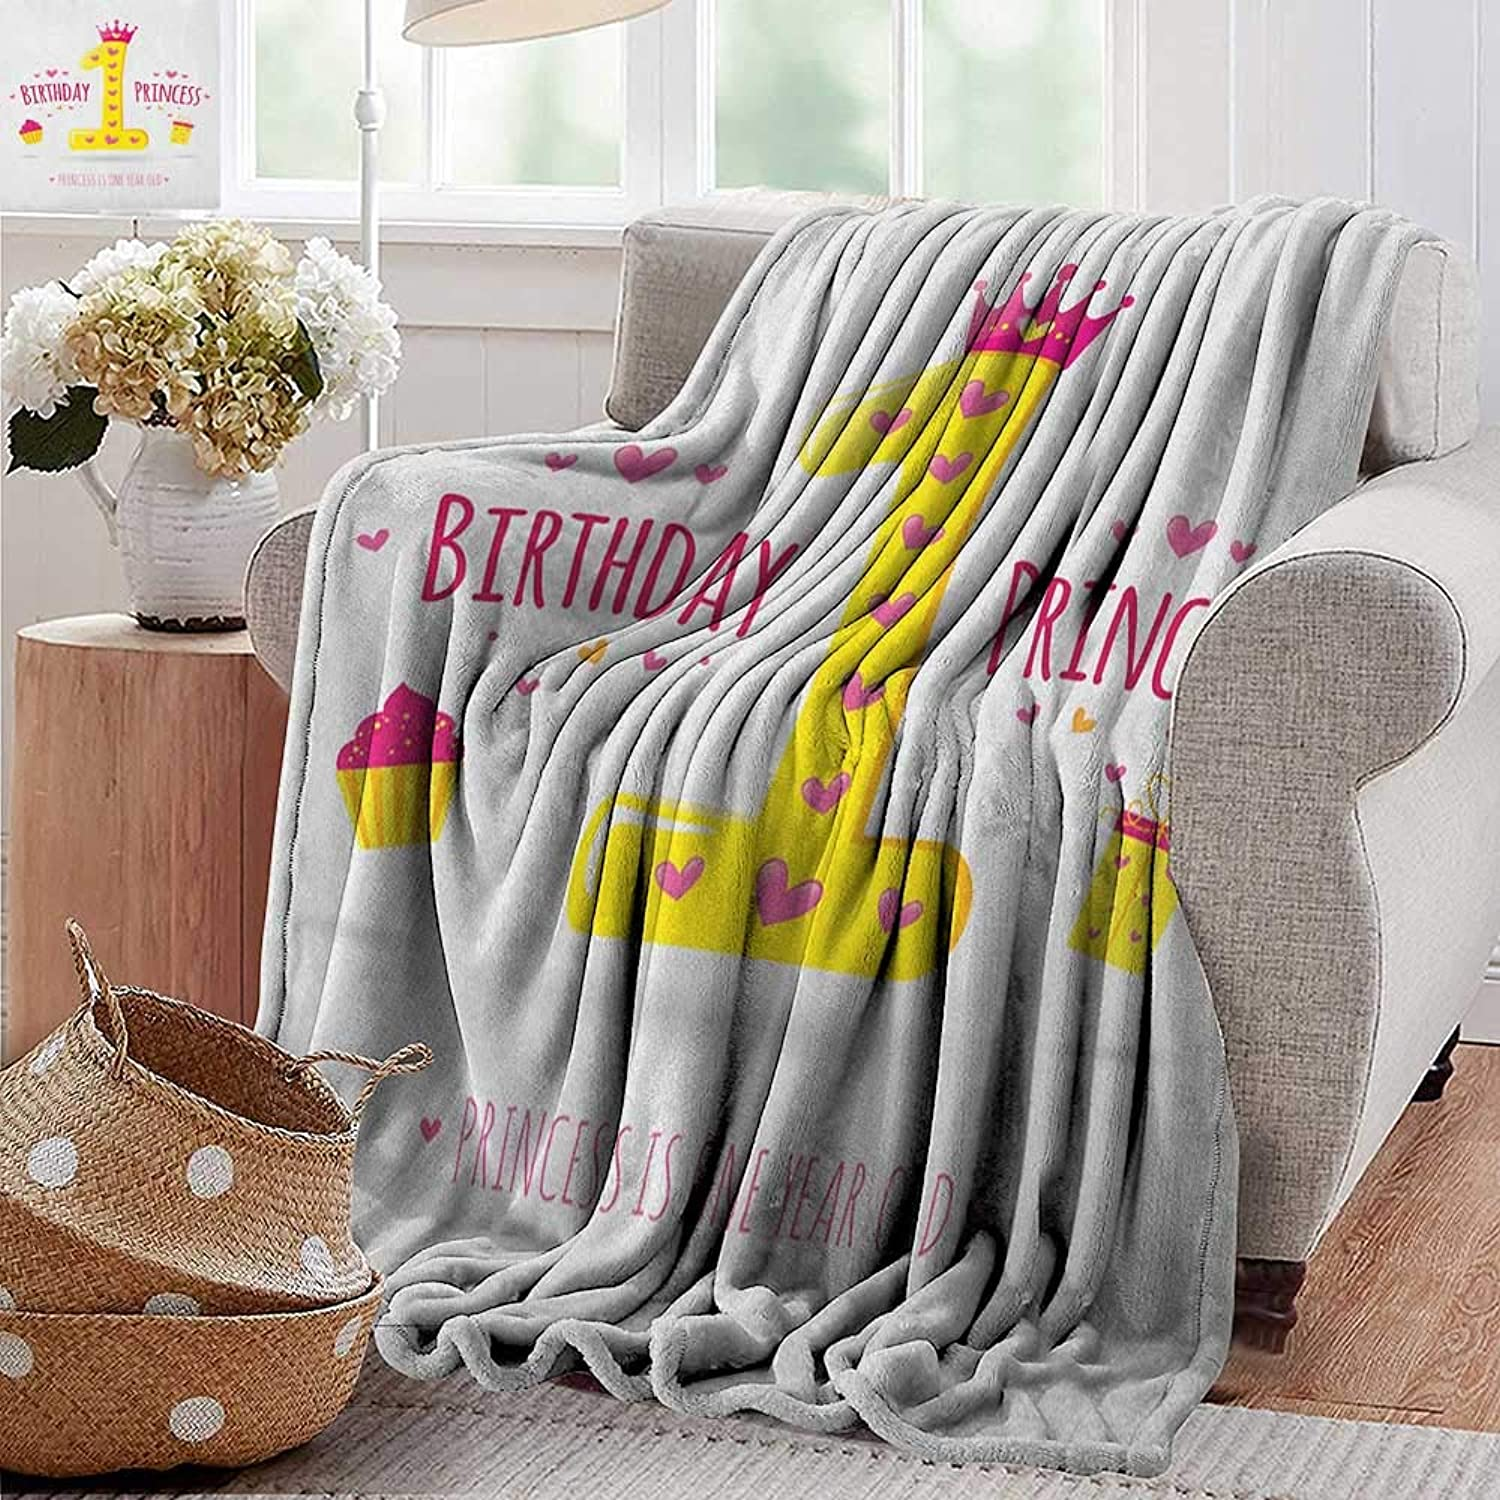 XavieraDoherty Wearable Blanket,1st Birthday,Quote Design with Sweet Princess Girl Theme Party with Hearts Image, Yellow and Hot Pink,Lightweight Microfiber,All Season for Couch or Bed 35 x60